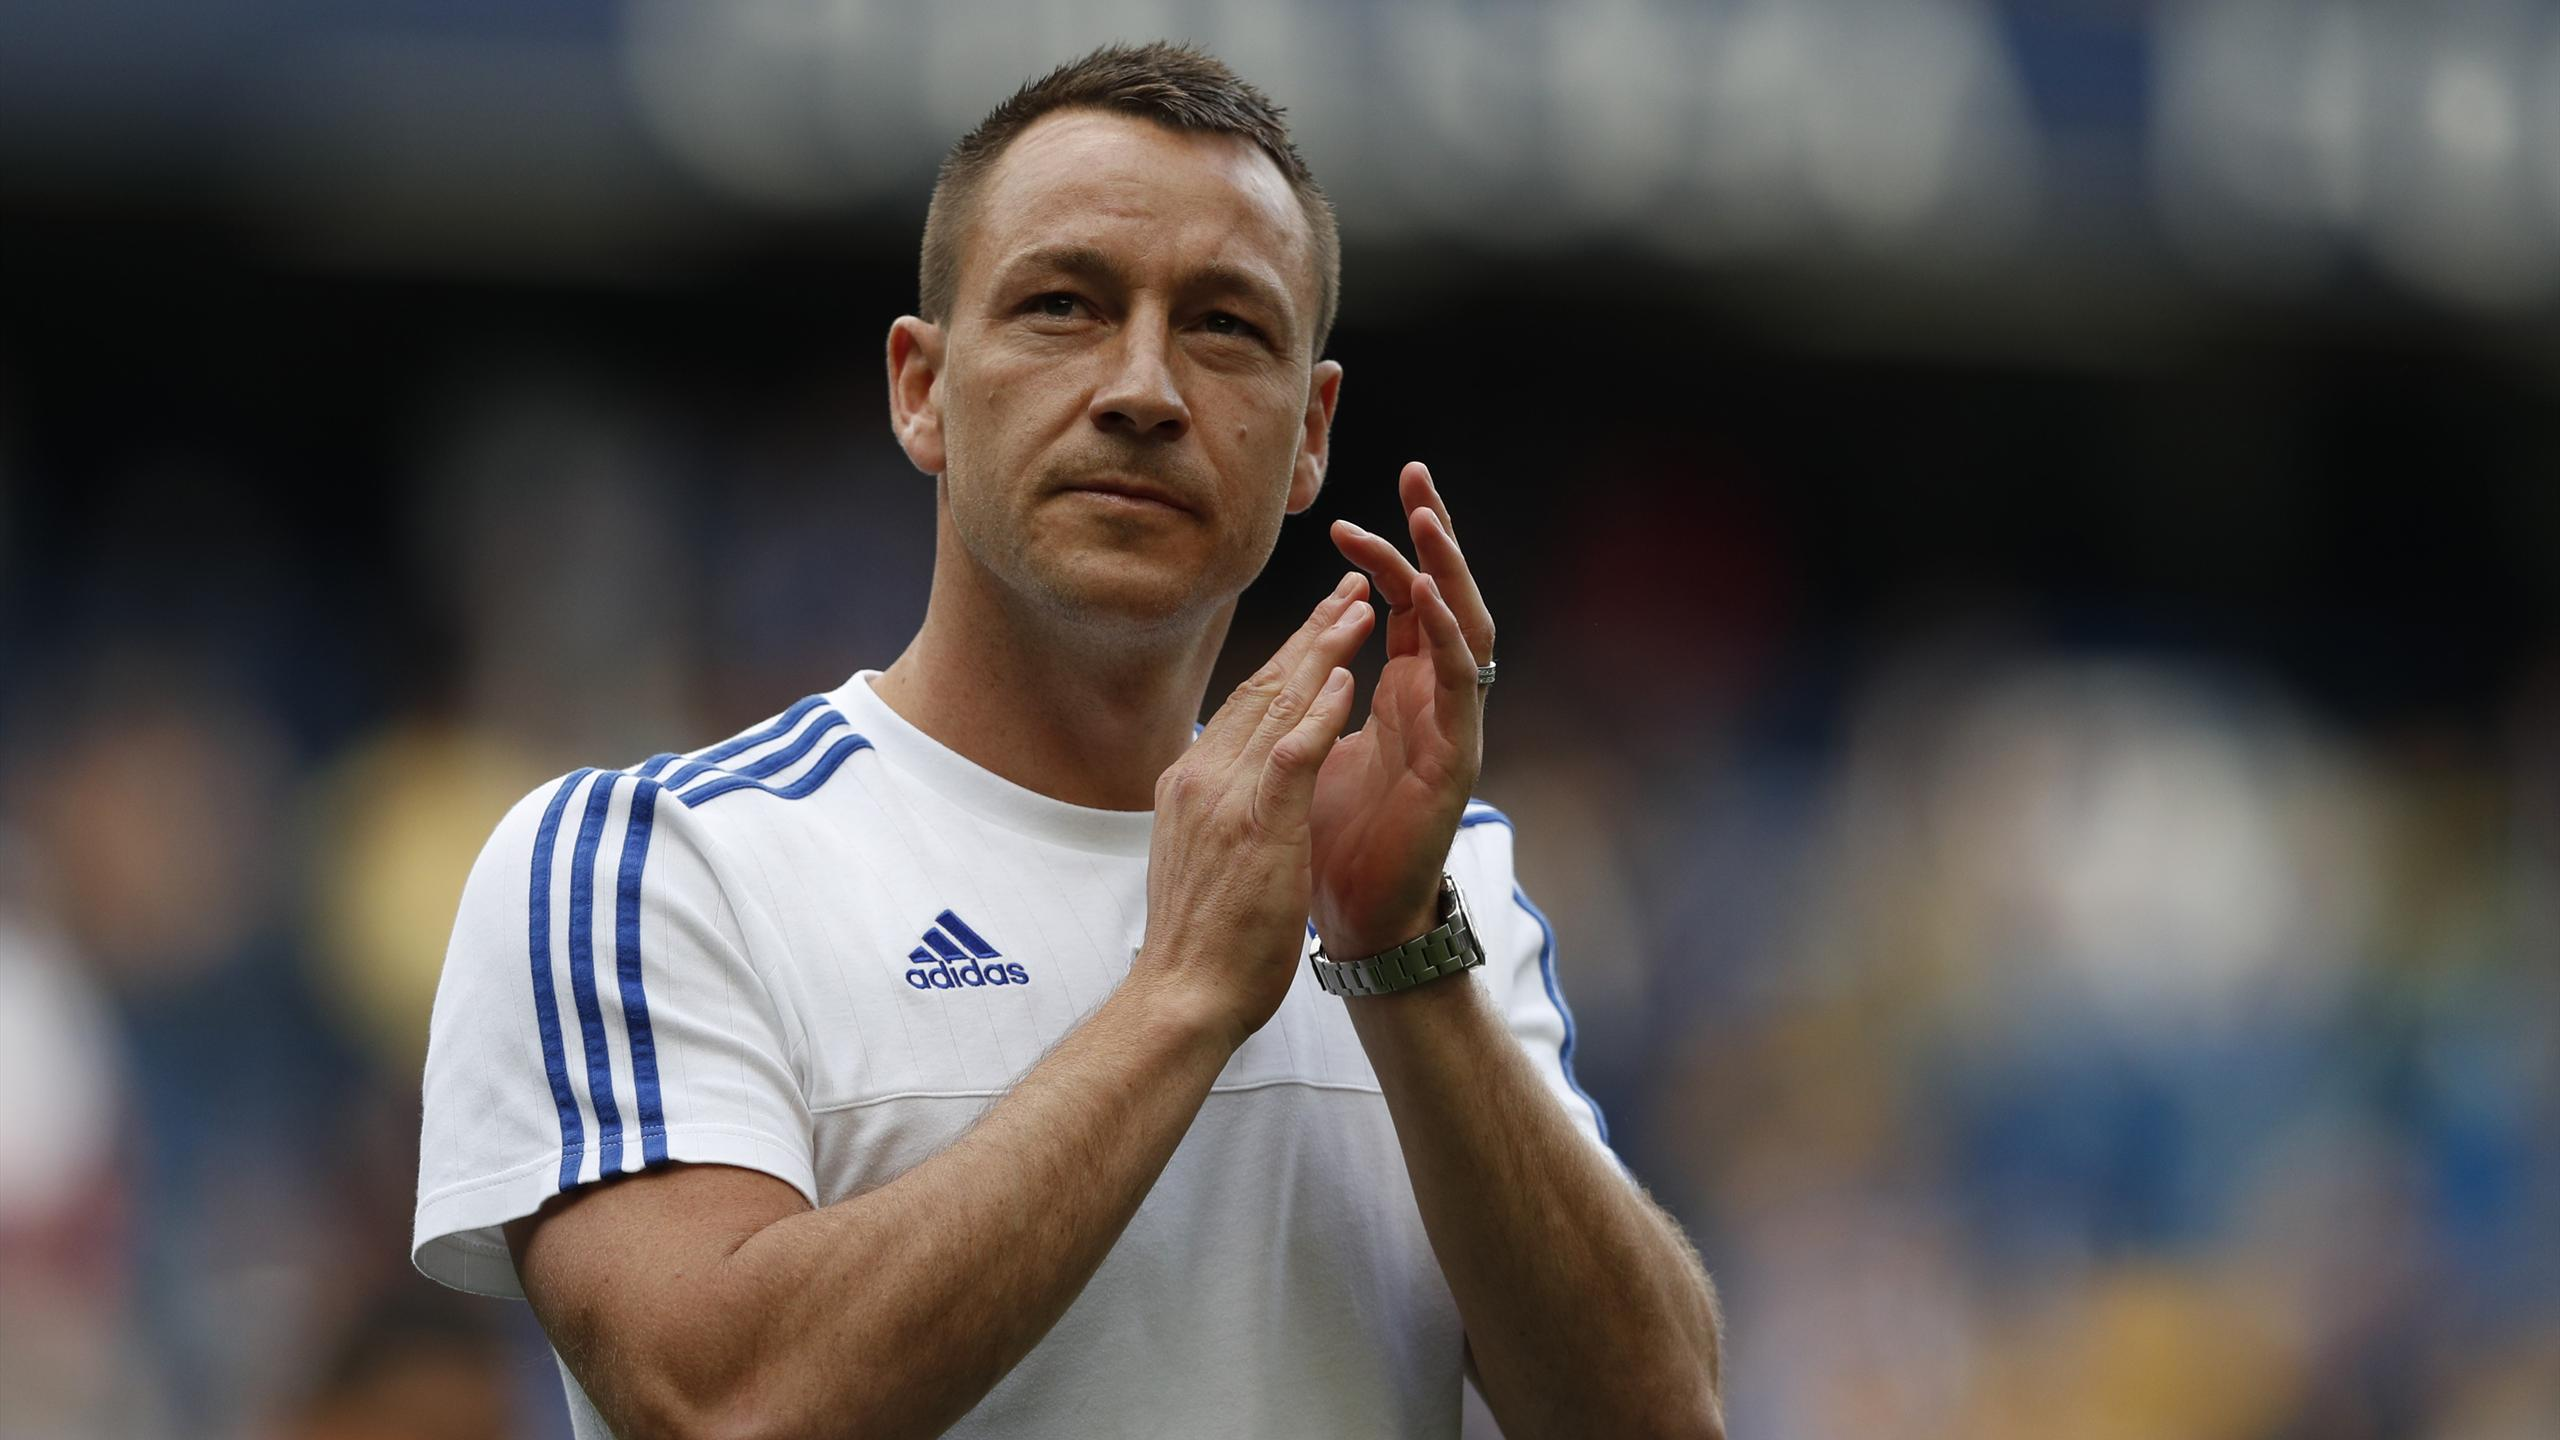 John Terry salutes the crowd